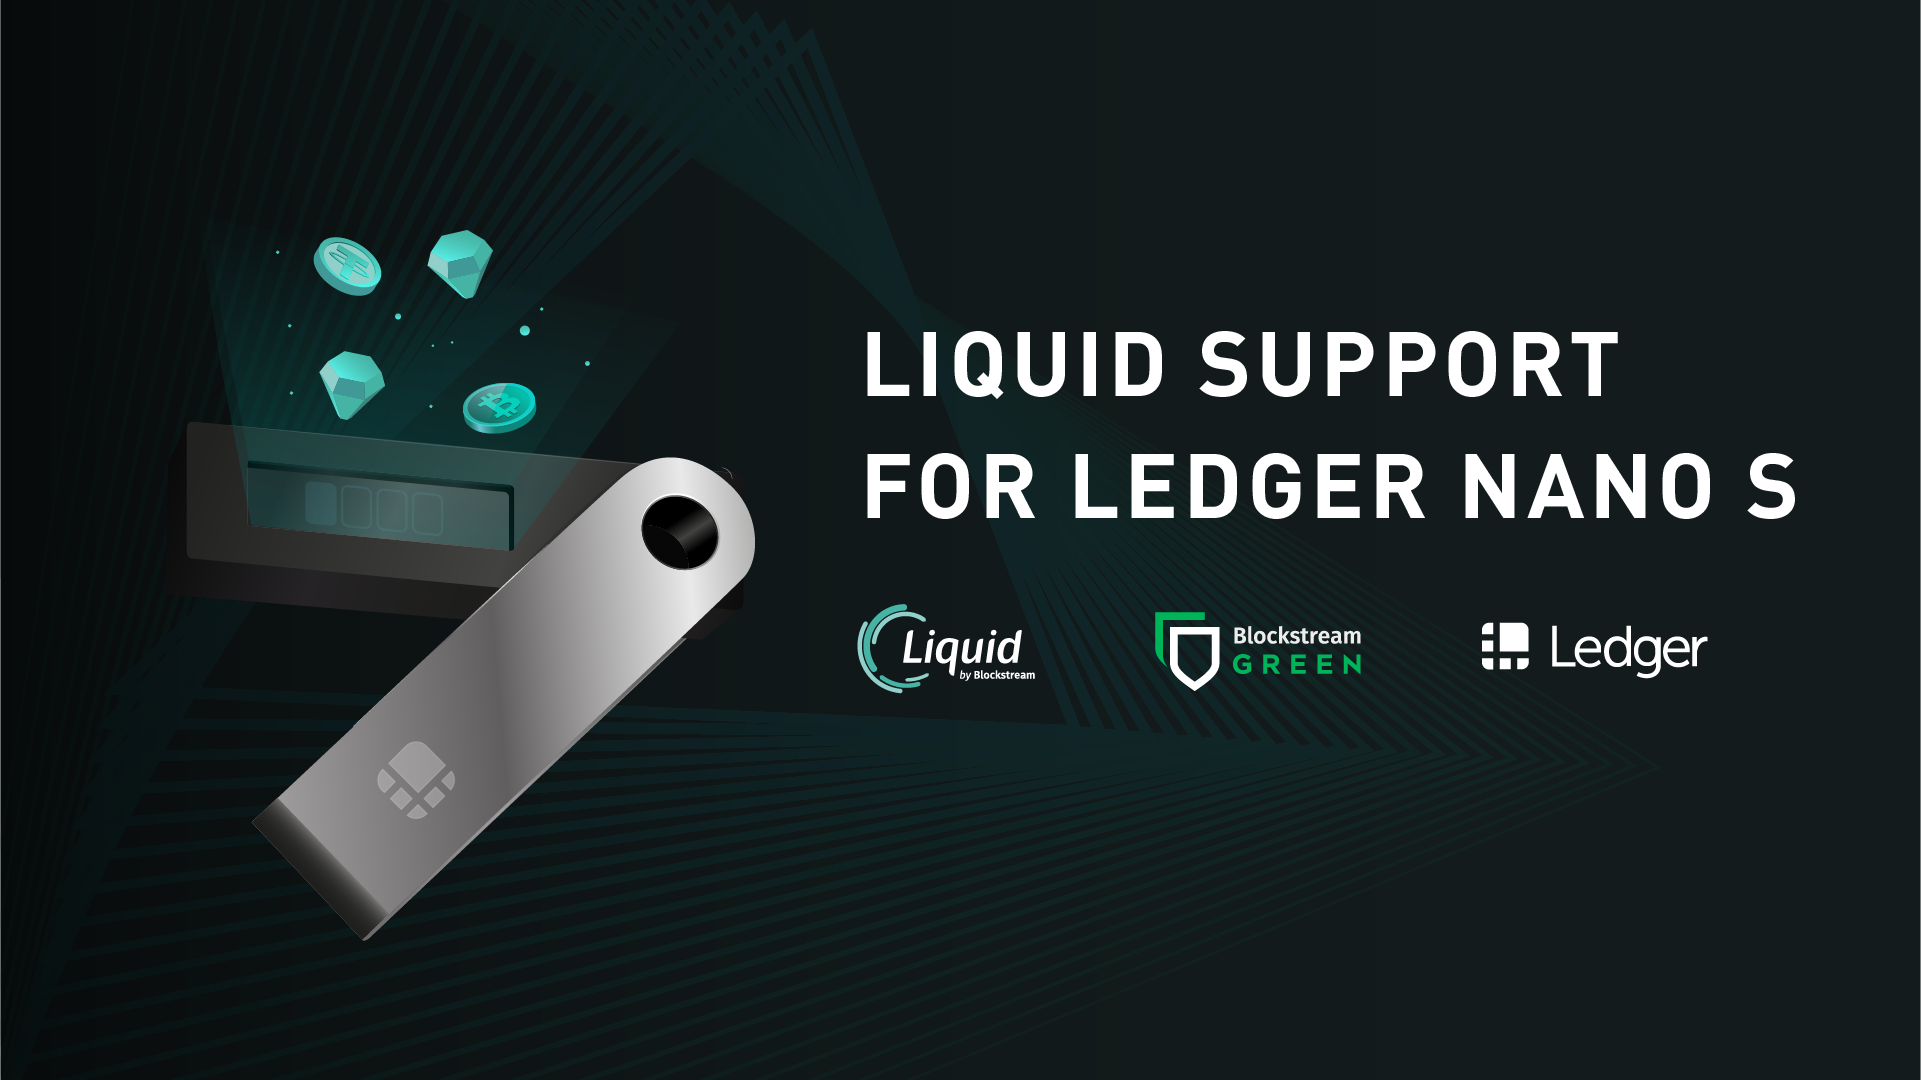 Liquid Asset Support Now on Ledger Nano S